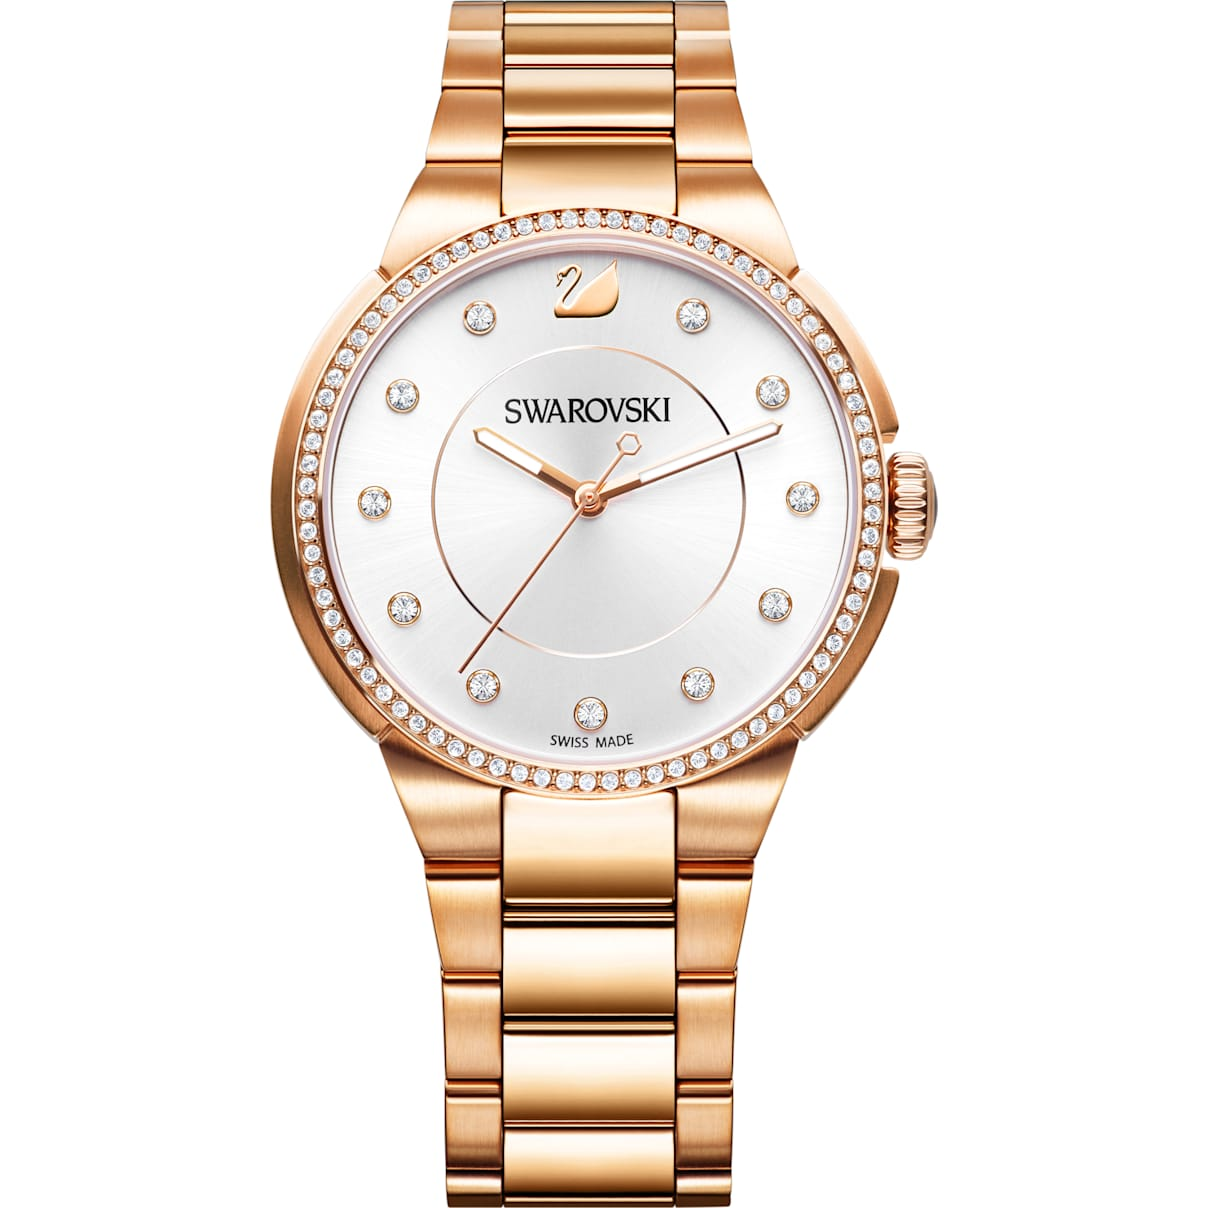 Swarovski City Watch, Metal bracelet, White, Rose gold tone